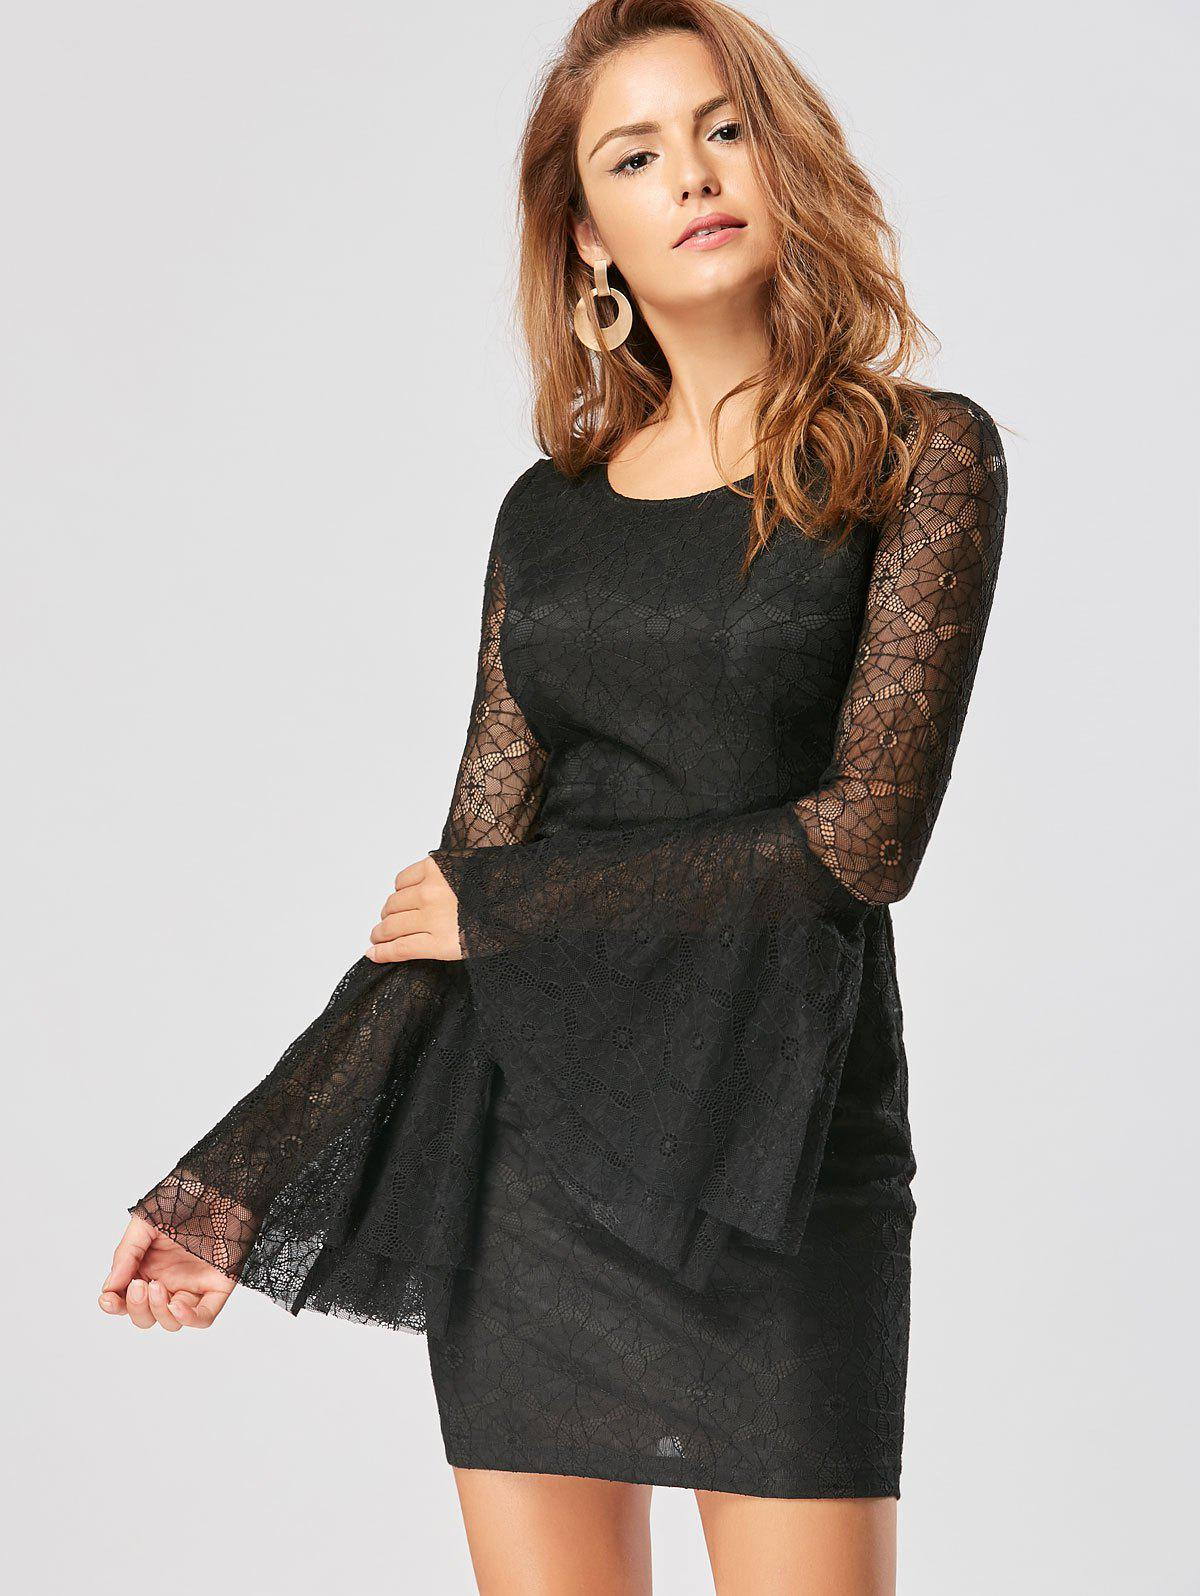 Skull Cut Out Lace Mini Bodycon Dress - BLACK XL